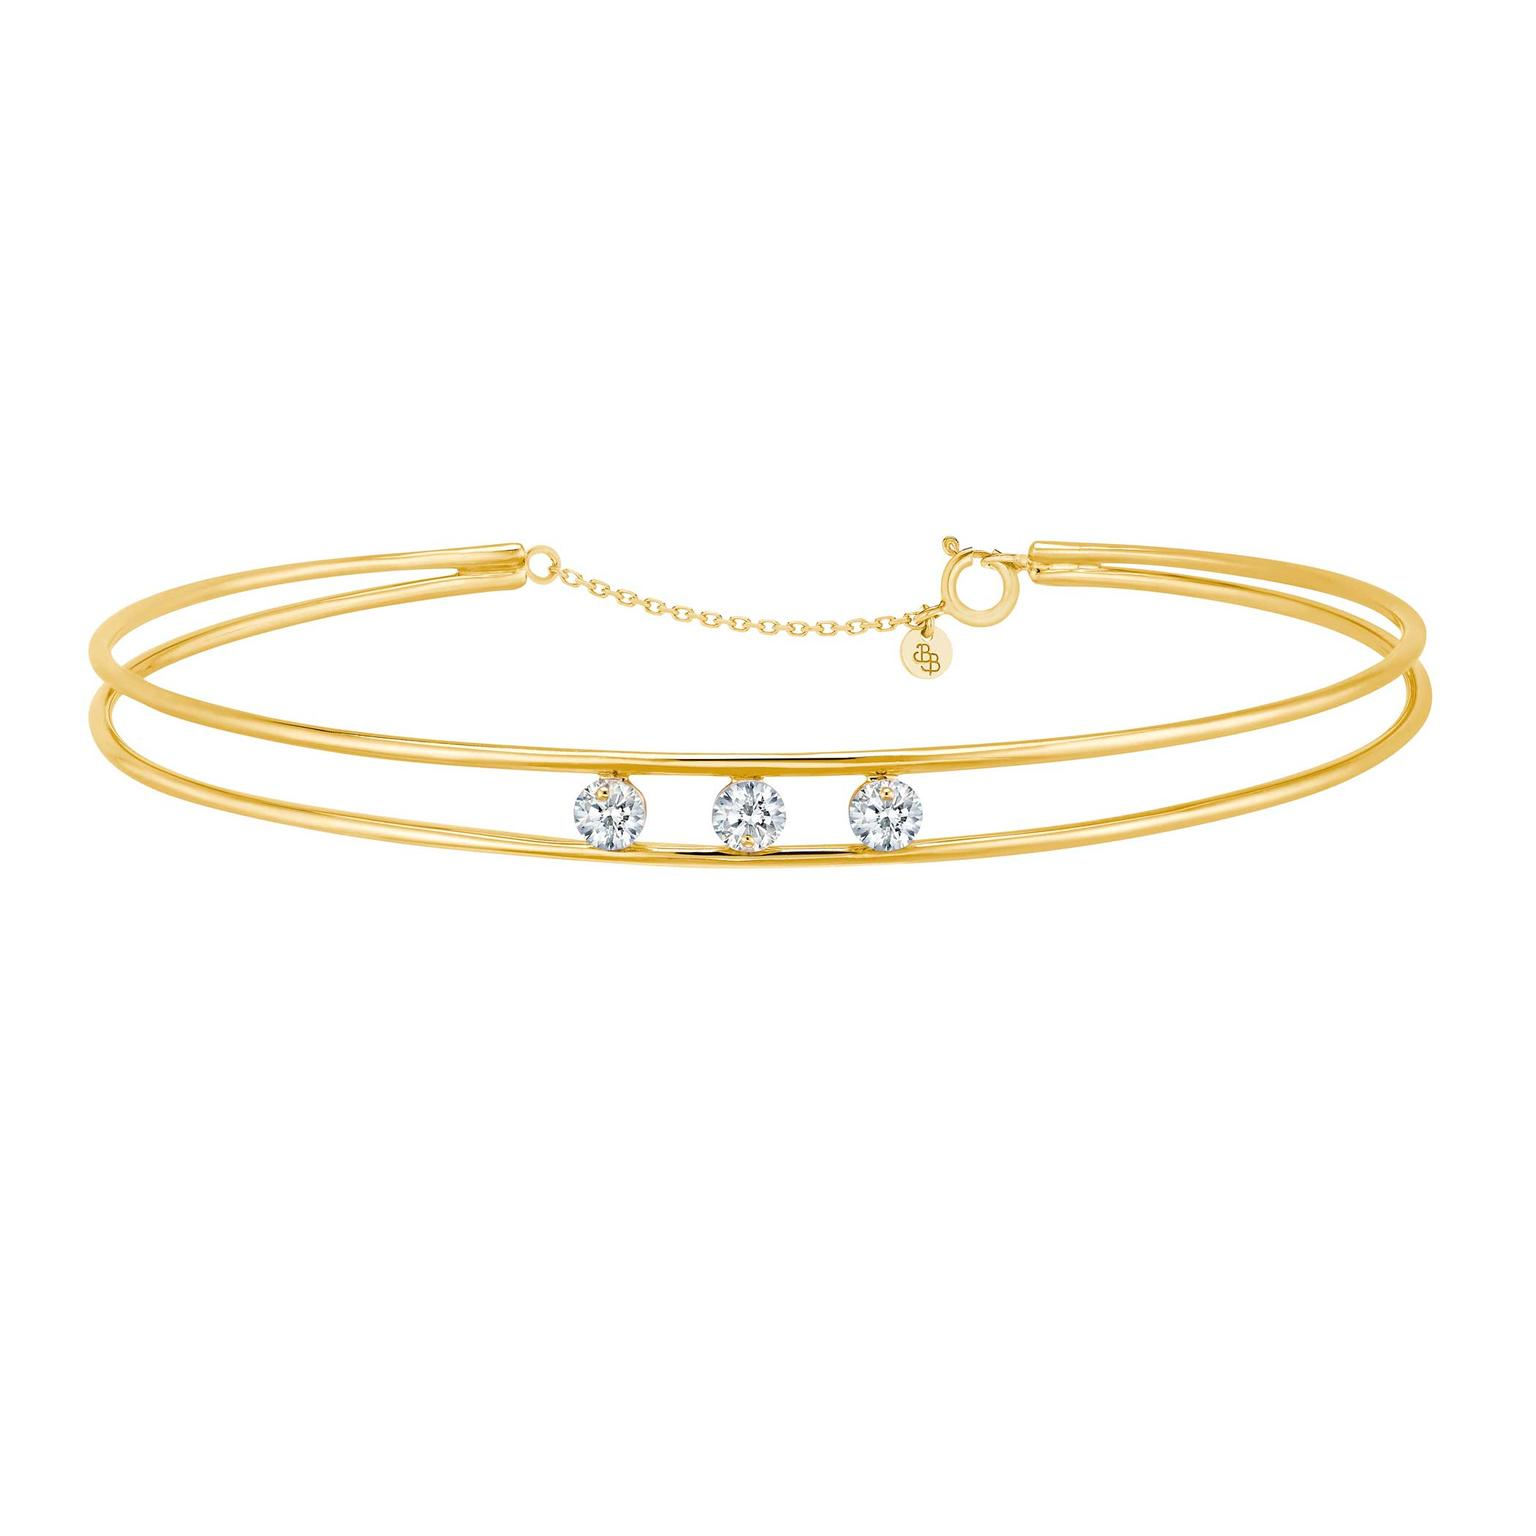 La Brune & La Blonde 360° double bangle with brilliant-cut diamonds in gold